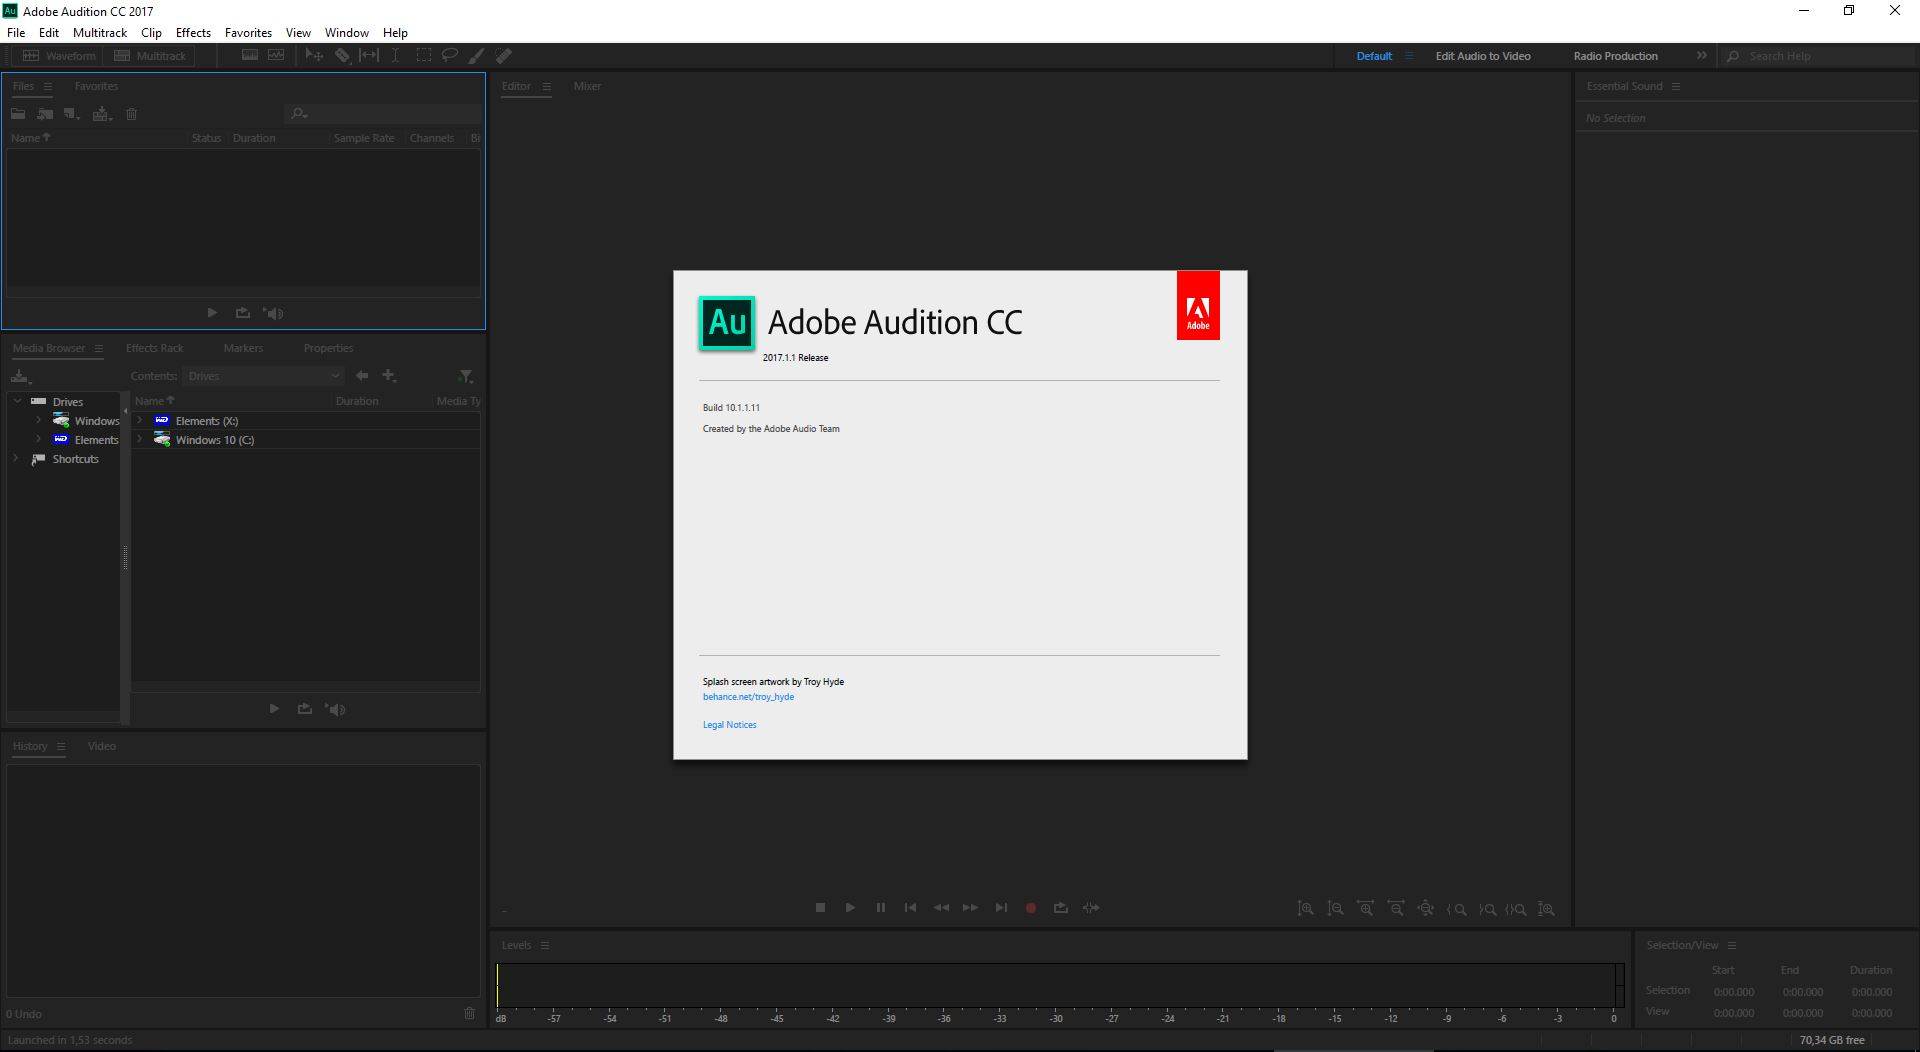 Torrent + Direct - Adobe Audition Cc 2017 10 1 1 11 (x64